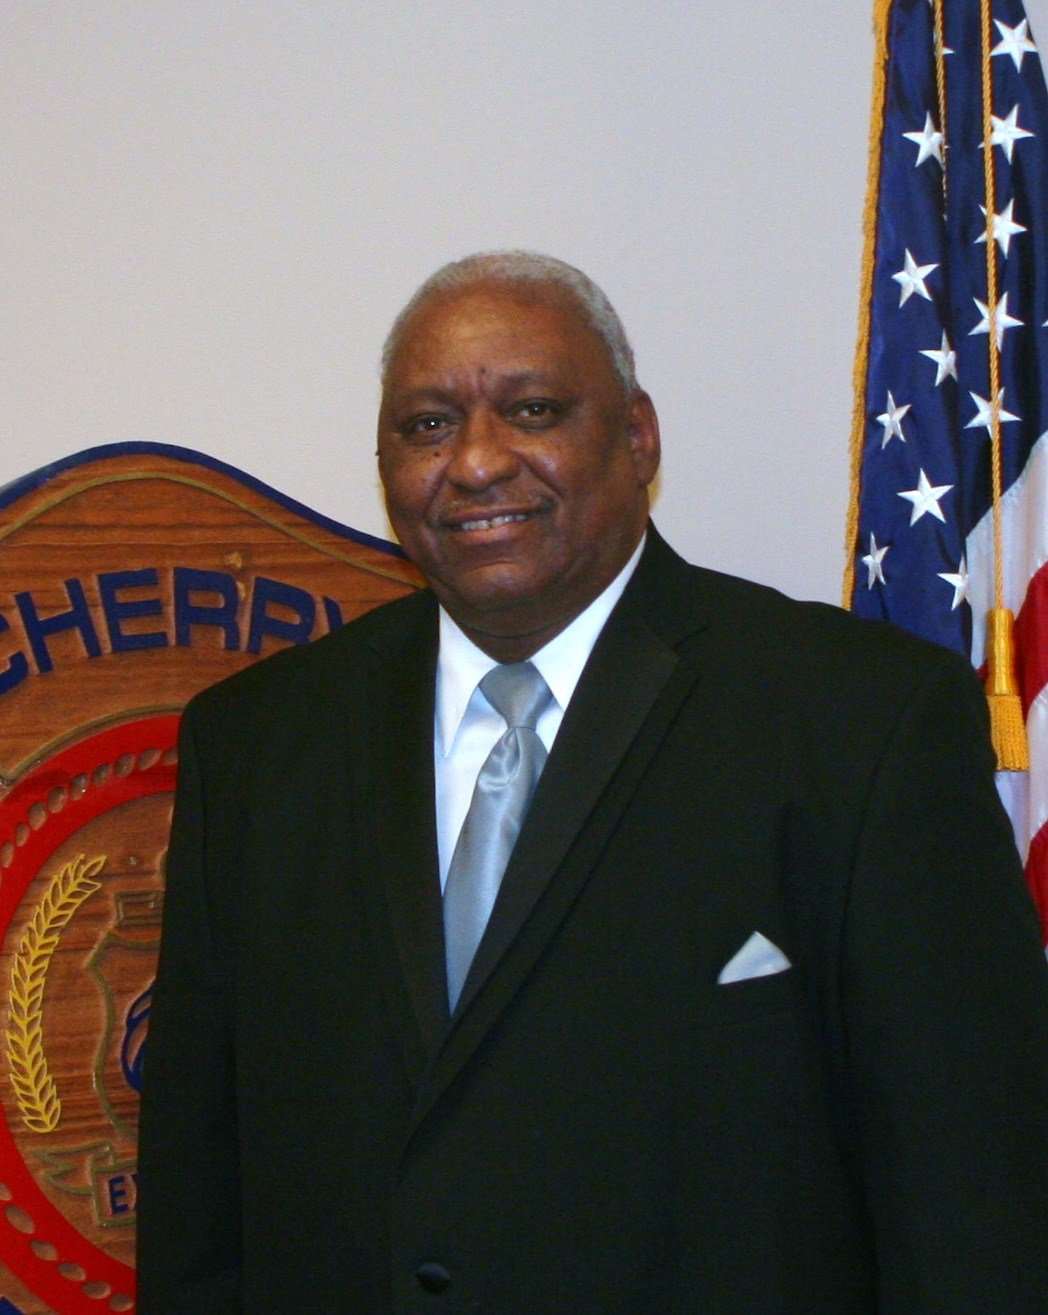 Member at Large William T. McCargo